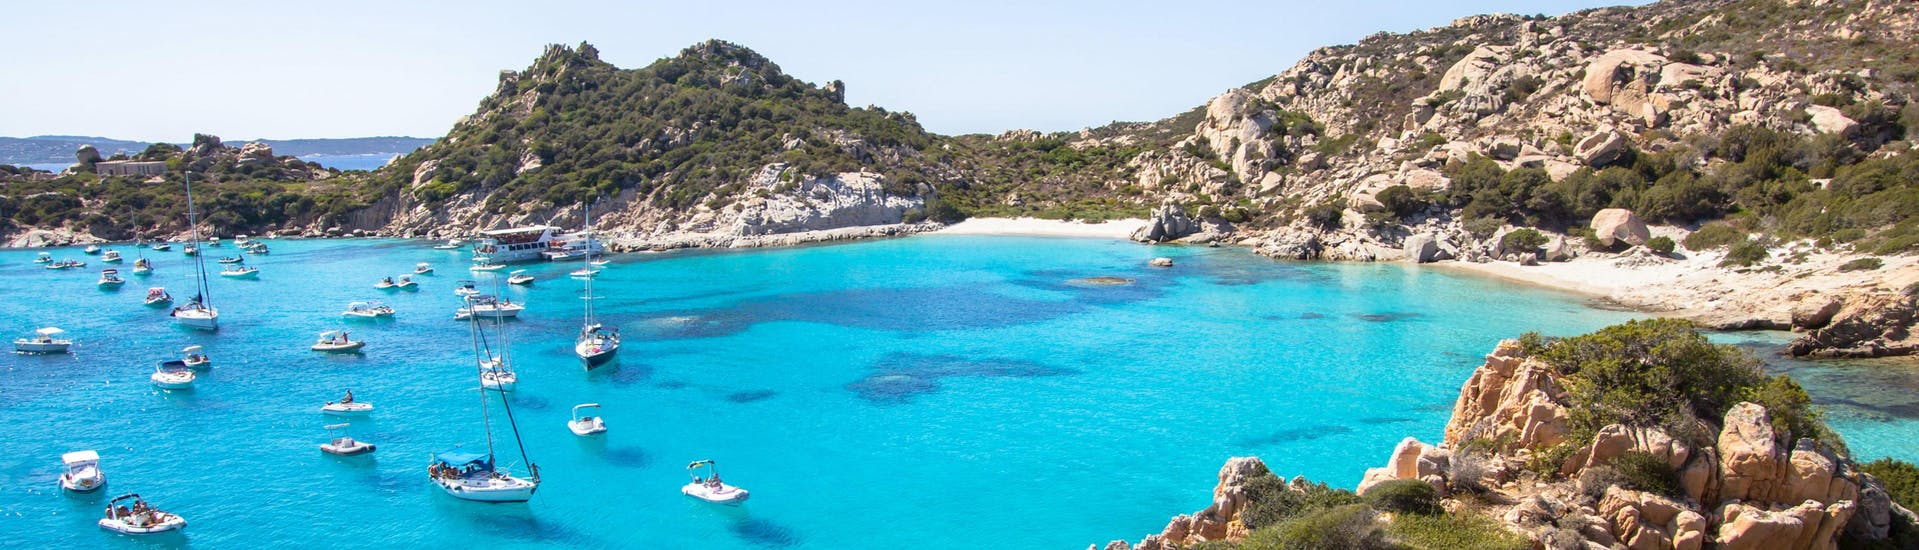 An image of the beautiful Cala Corsada, one of the places you get to visit on a boat tour from Palau.